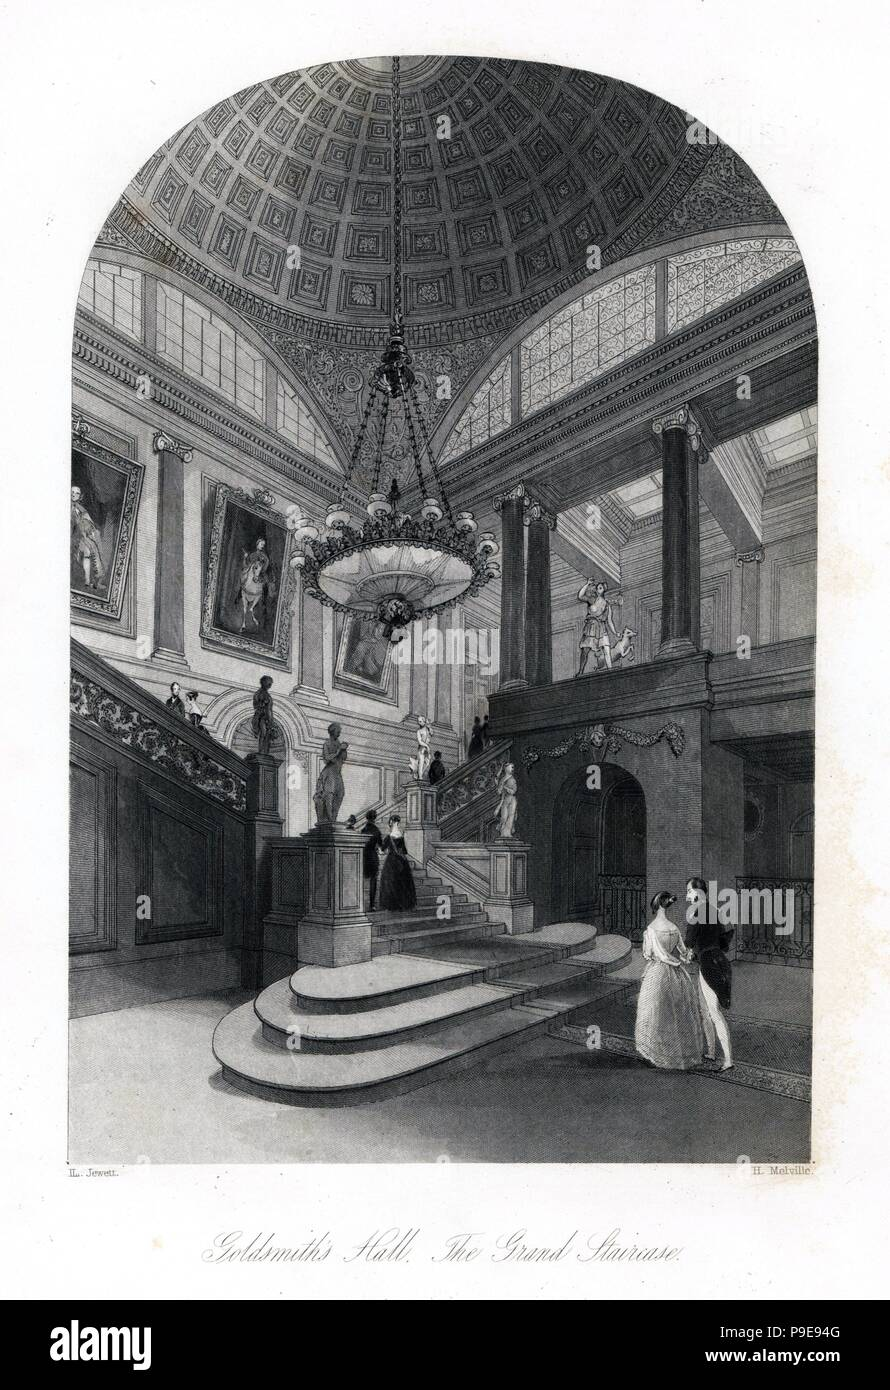 The grand staircase, Goldsmith's Hall. Steel engraving by Henry Melville after an illustration by Llewellyn Jewitt from London Interiors, Their Costumes and Ceremonies, Joshua Mead, London, 1841. - Stock Image